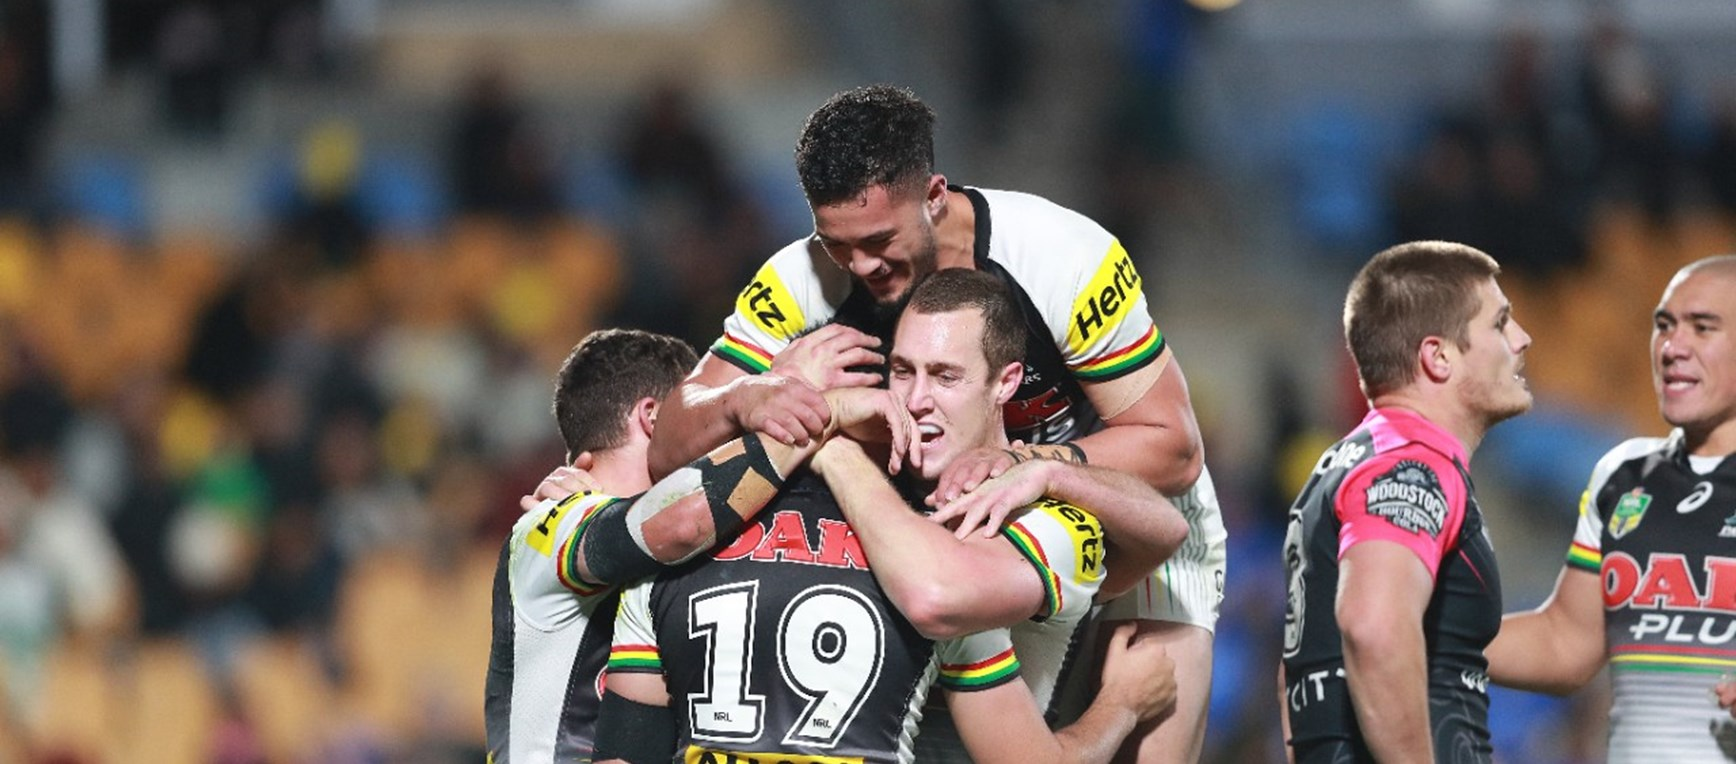 Gallery: Panthers v Warriors